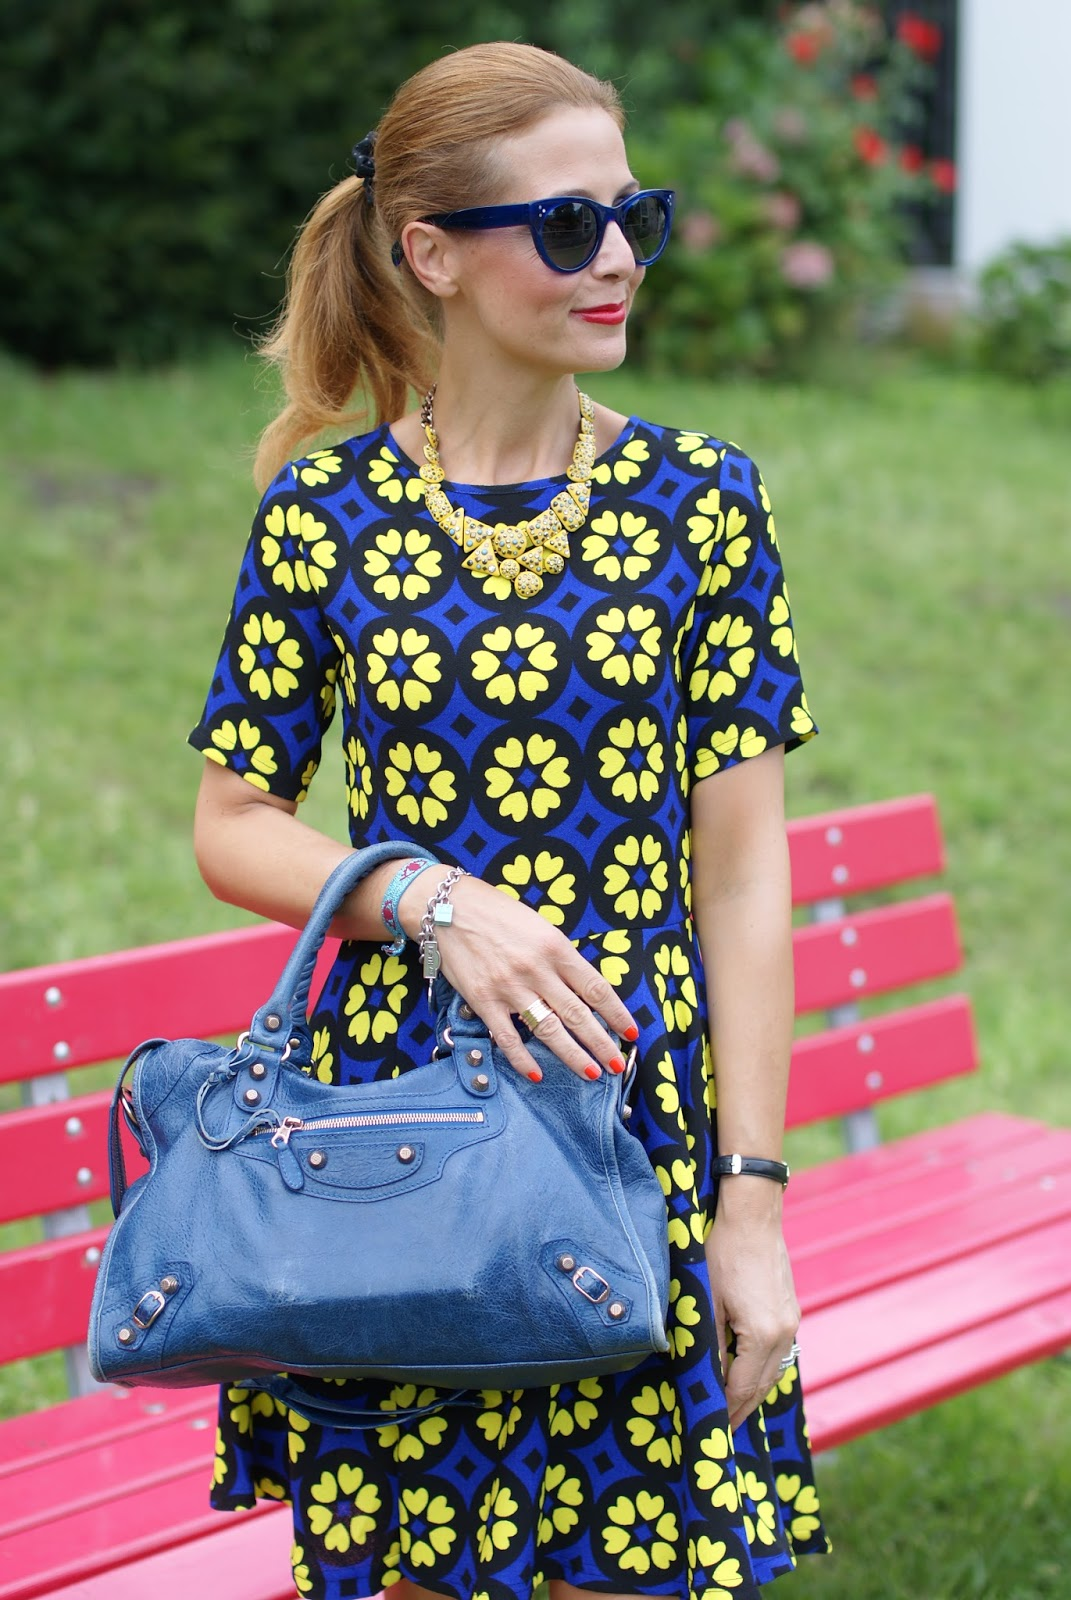 Daisy print skater dress with adidas Supercolor yellow sneakers on Fashion and Cookies fashion blog, fashion blogger girly style